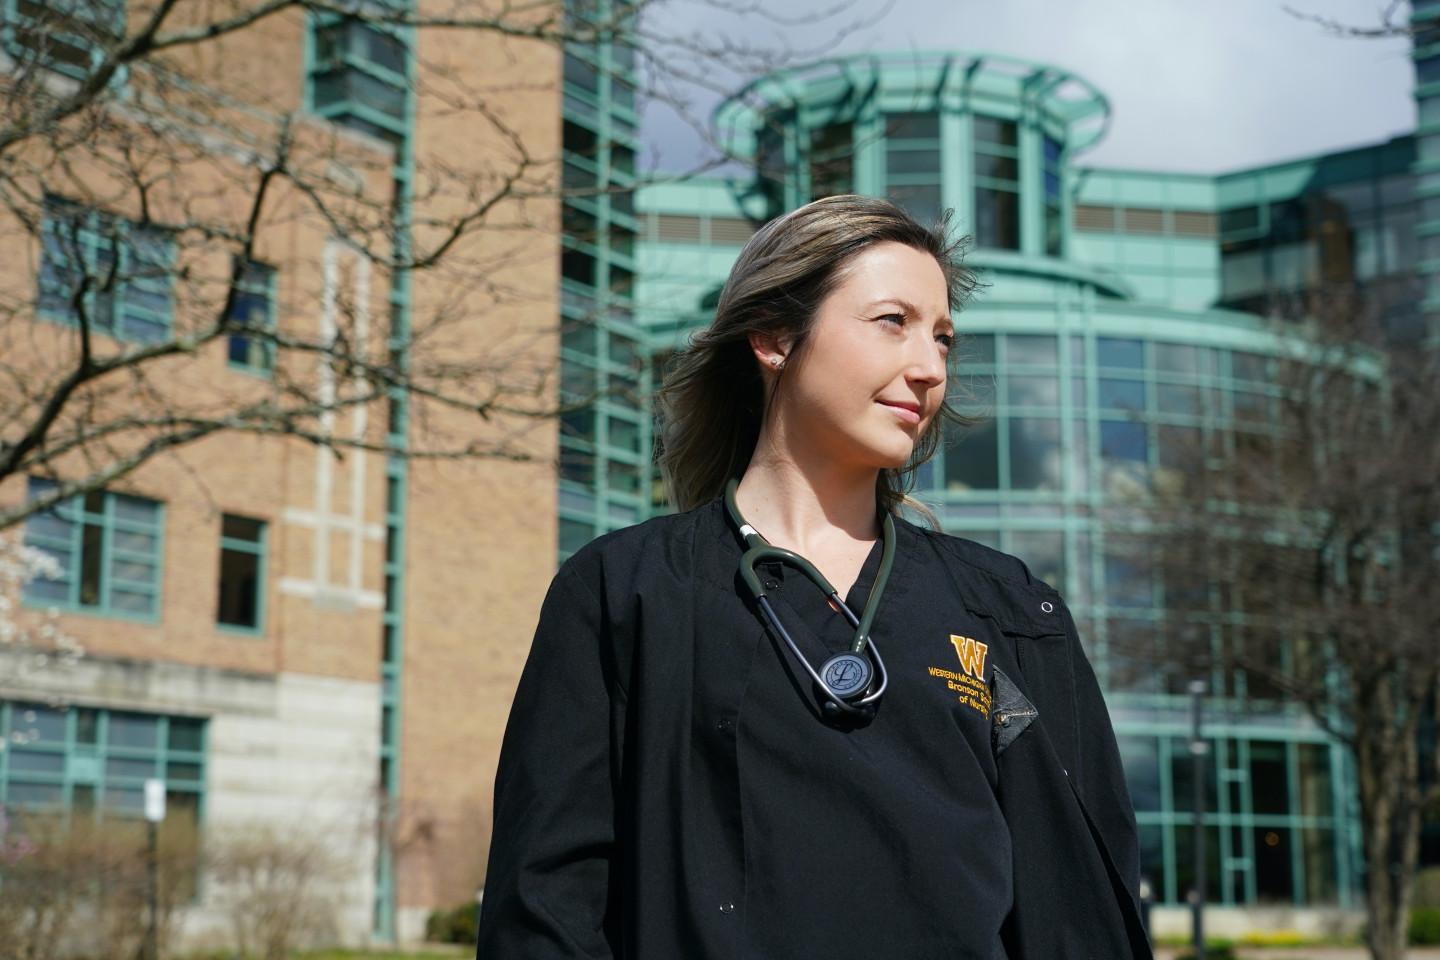 A nursing student stands outside with her stethoscope around her neck.